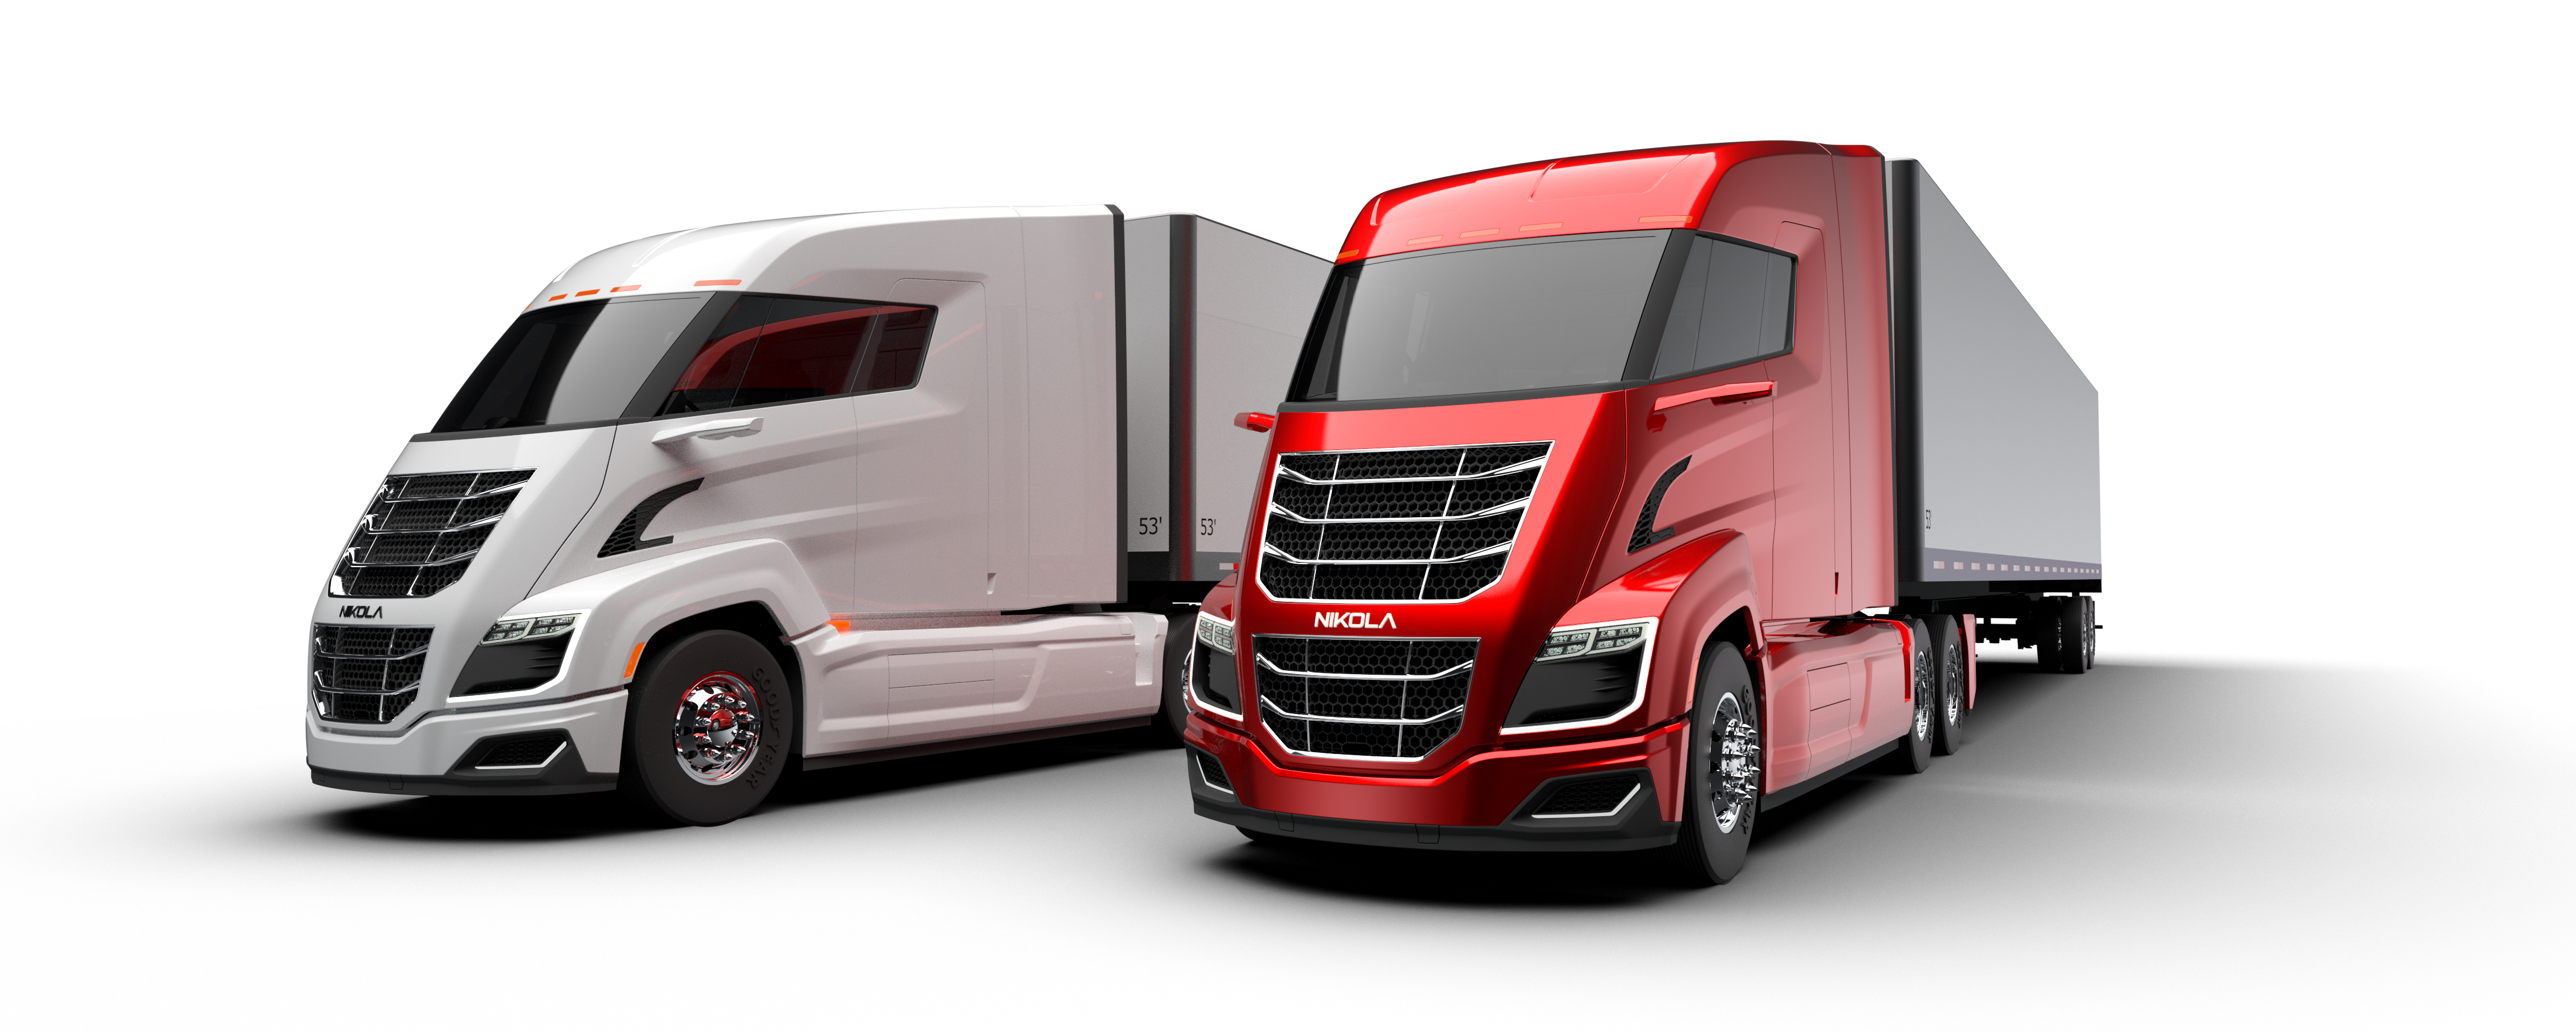 Commercial vehicle innovation enabler: Bosch brings advanced solutions to the new Nikola Two truck